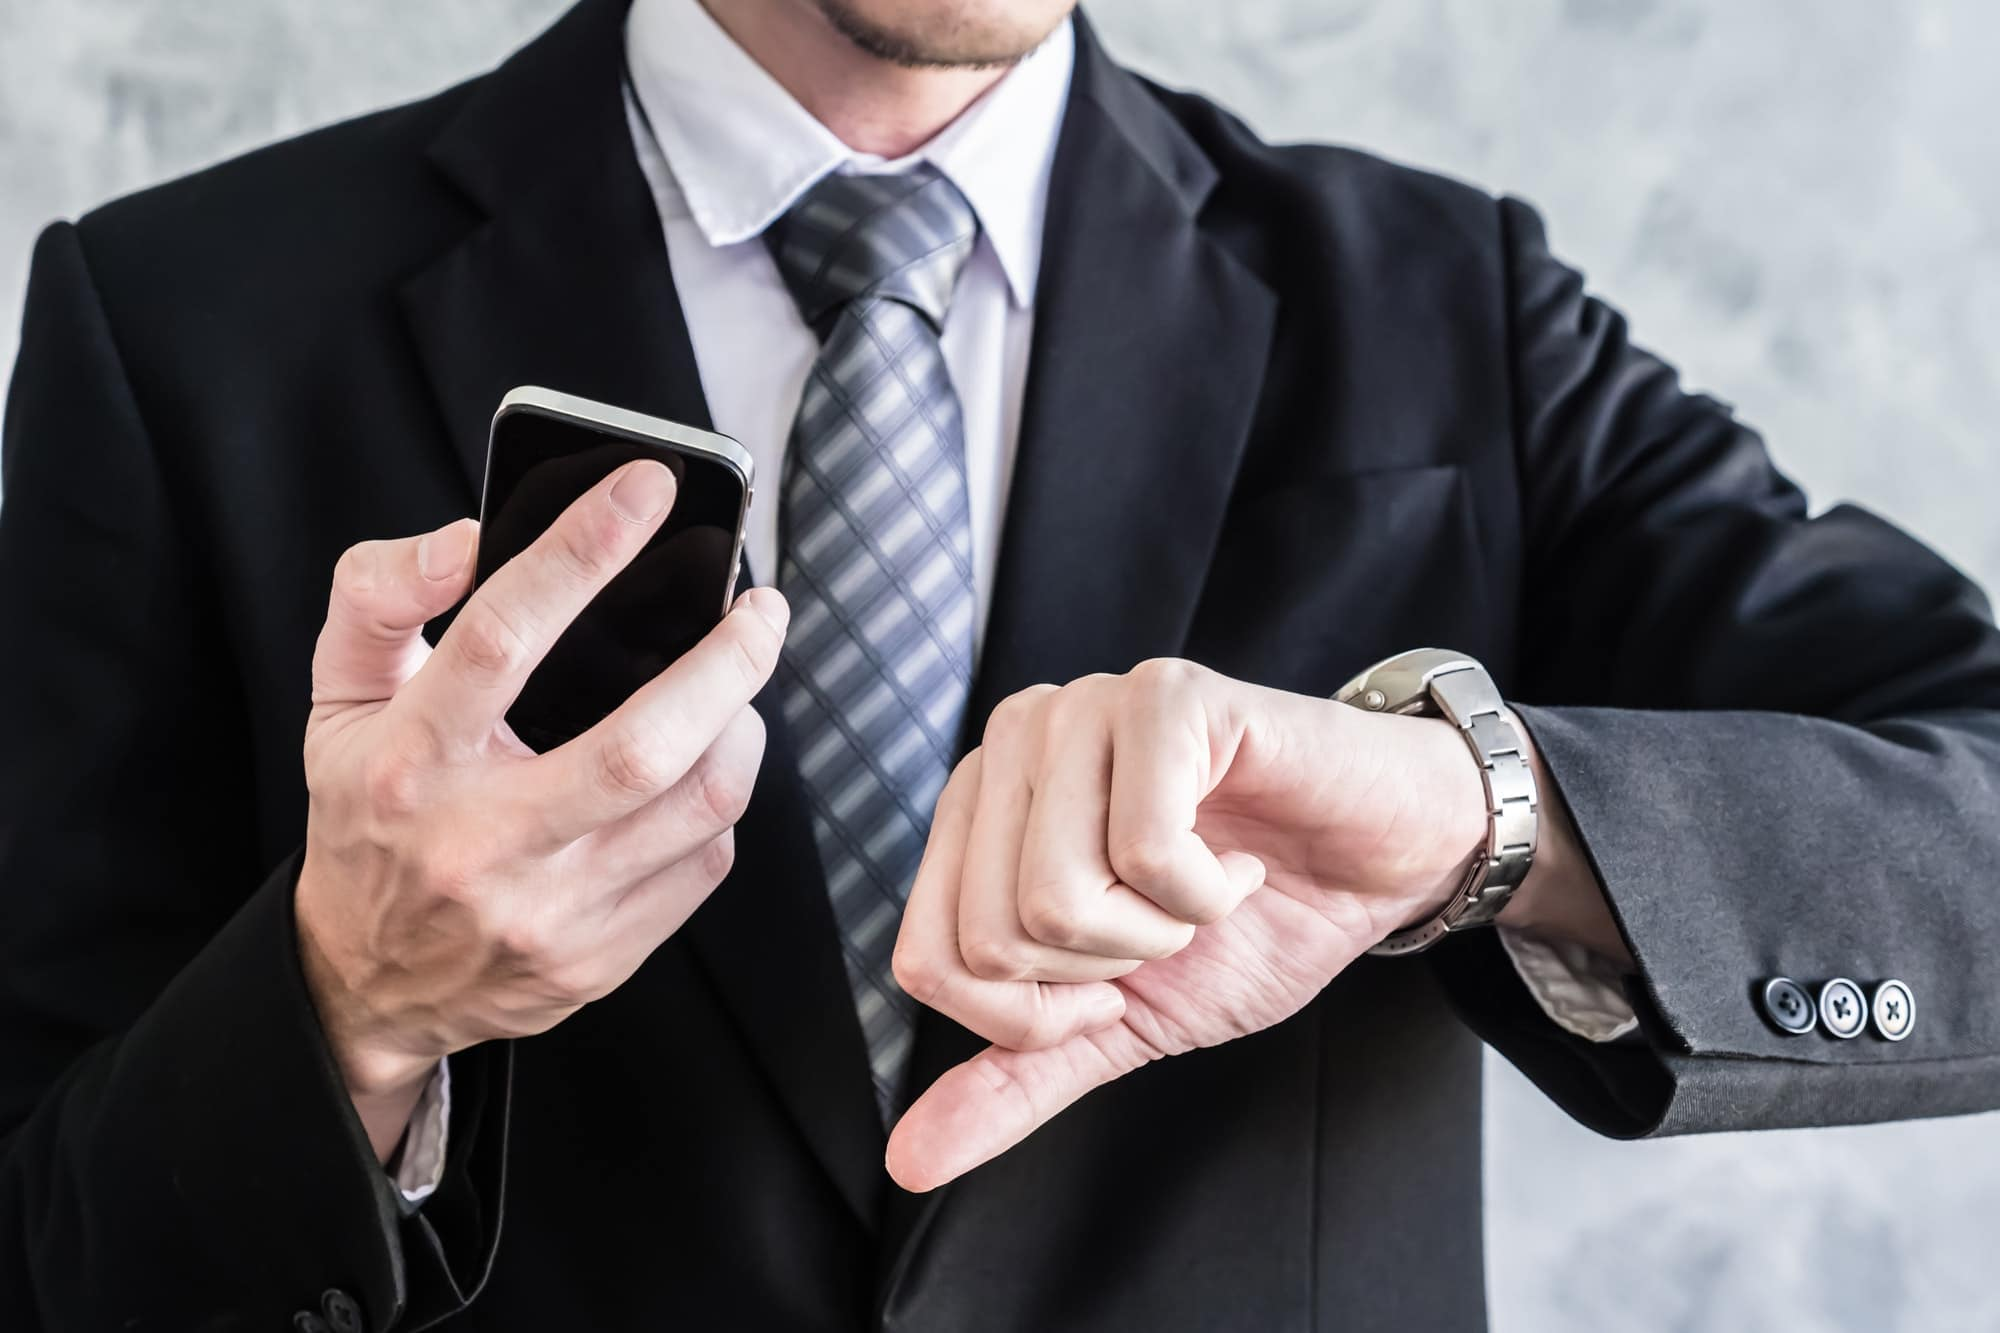 Close up of businessman using smart phone and checking time on his wrist watch.